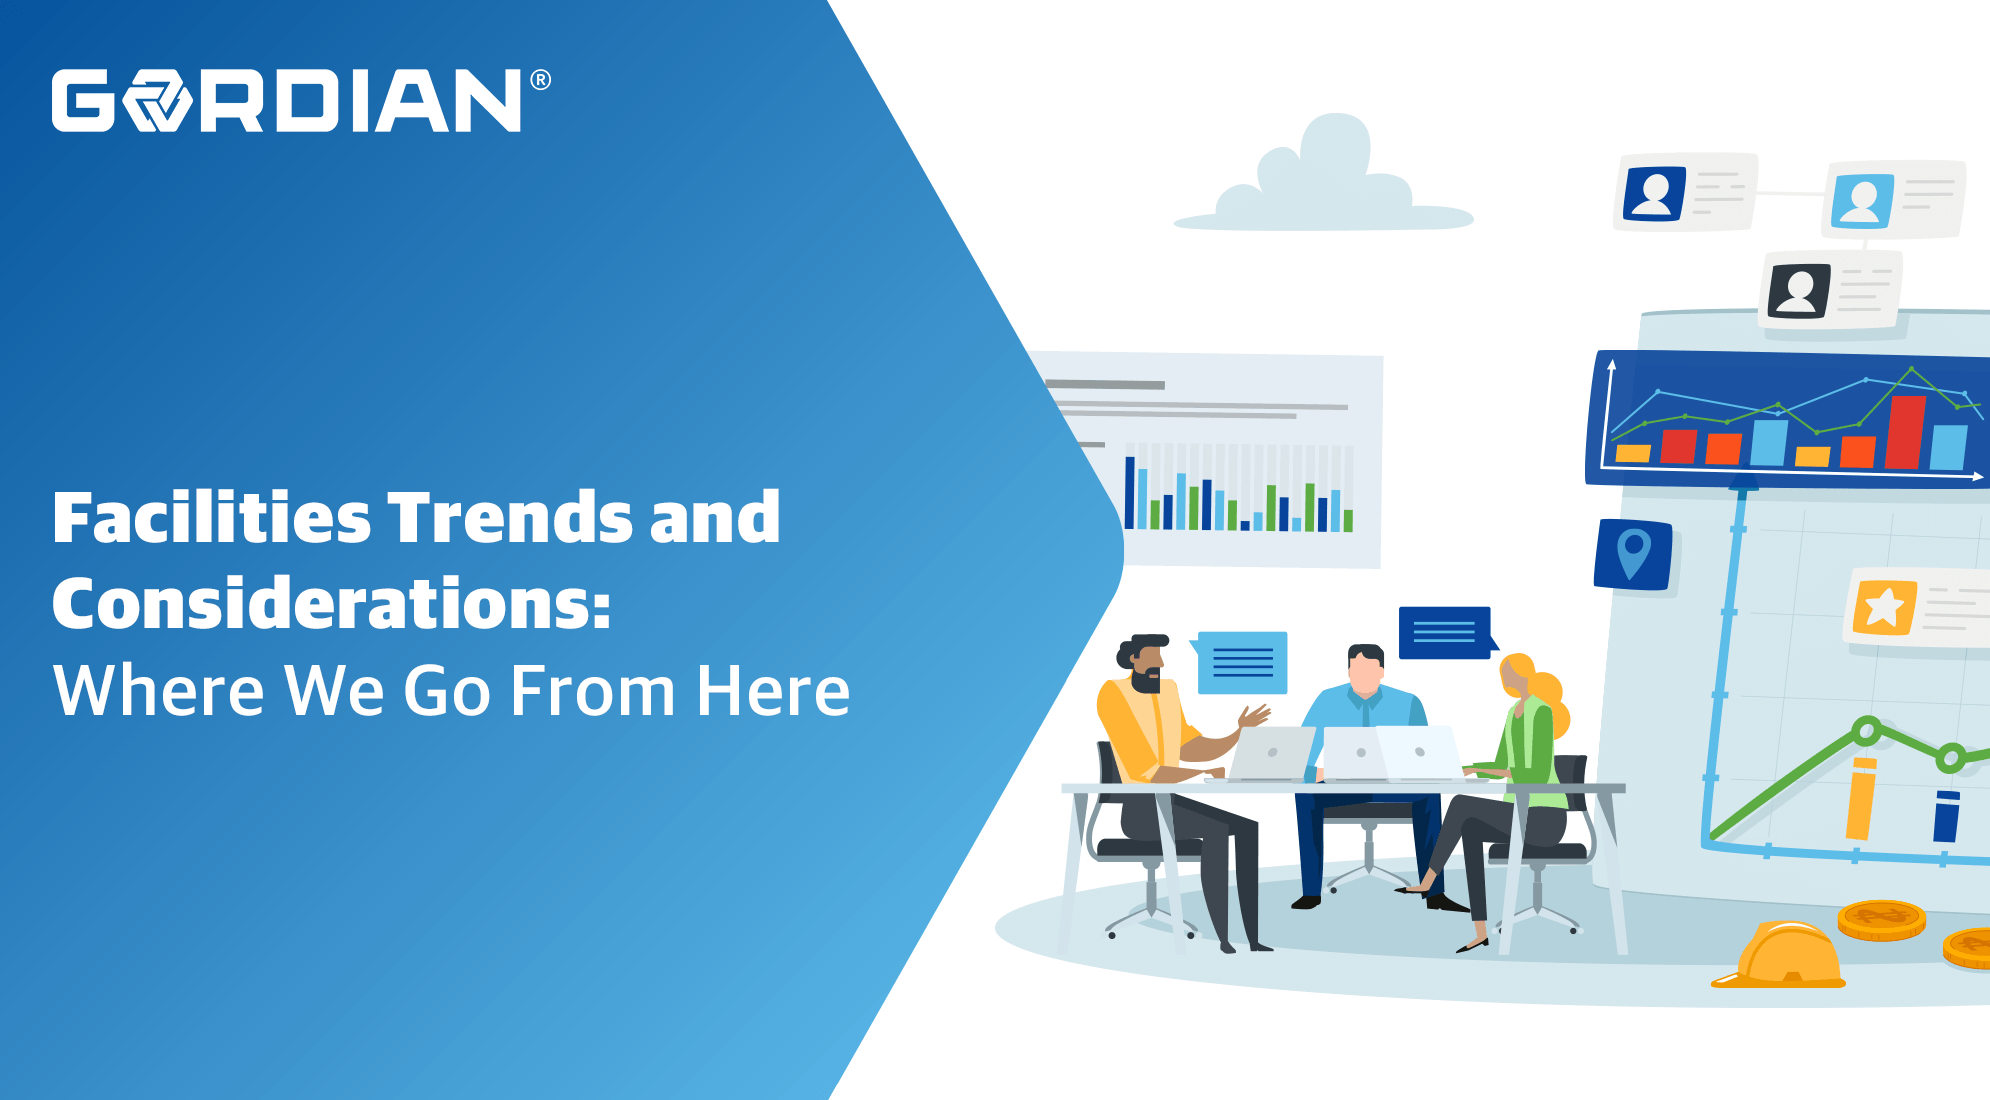 Facilities Trends and Considerations: Where We Go From Here